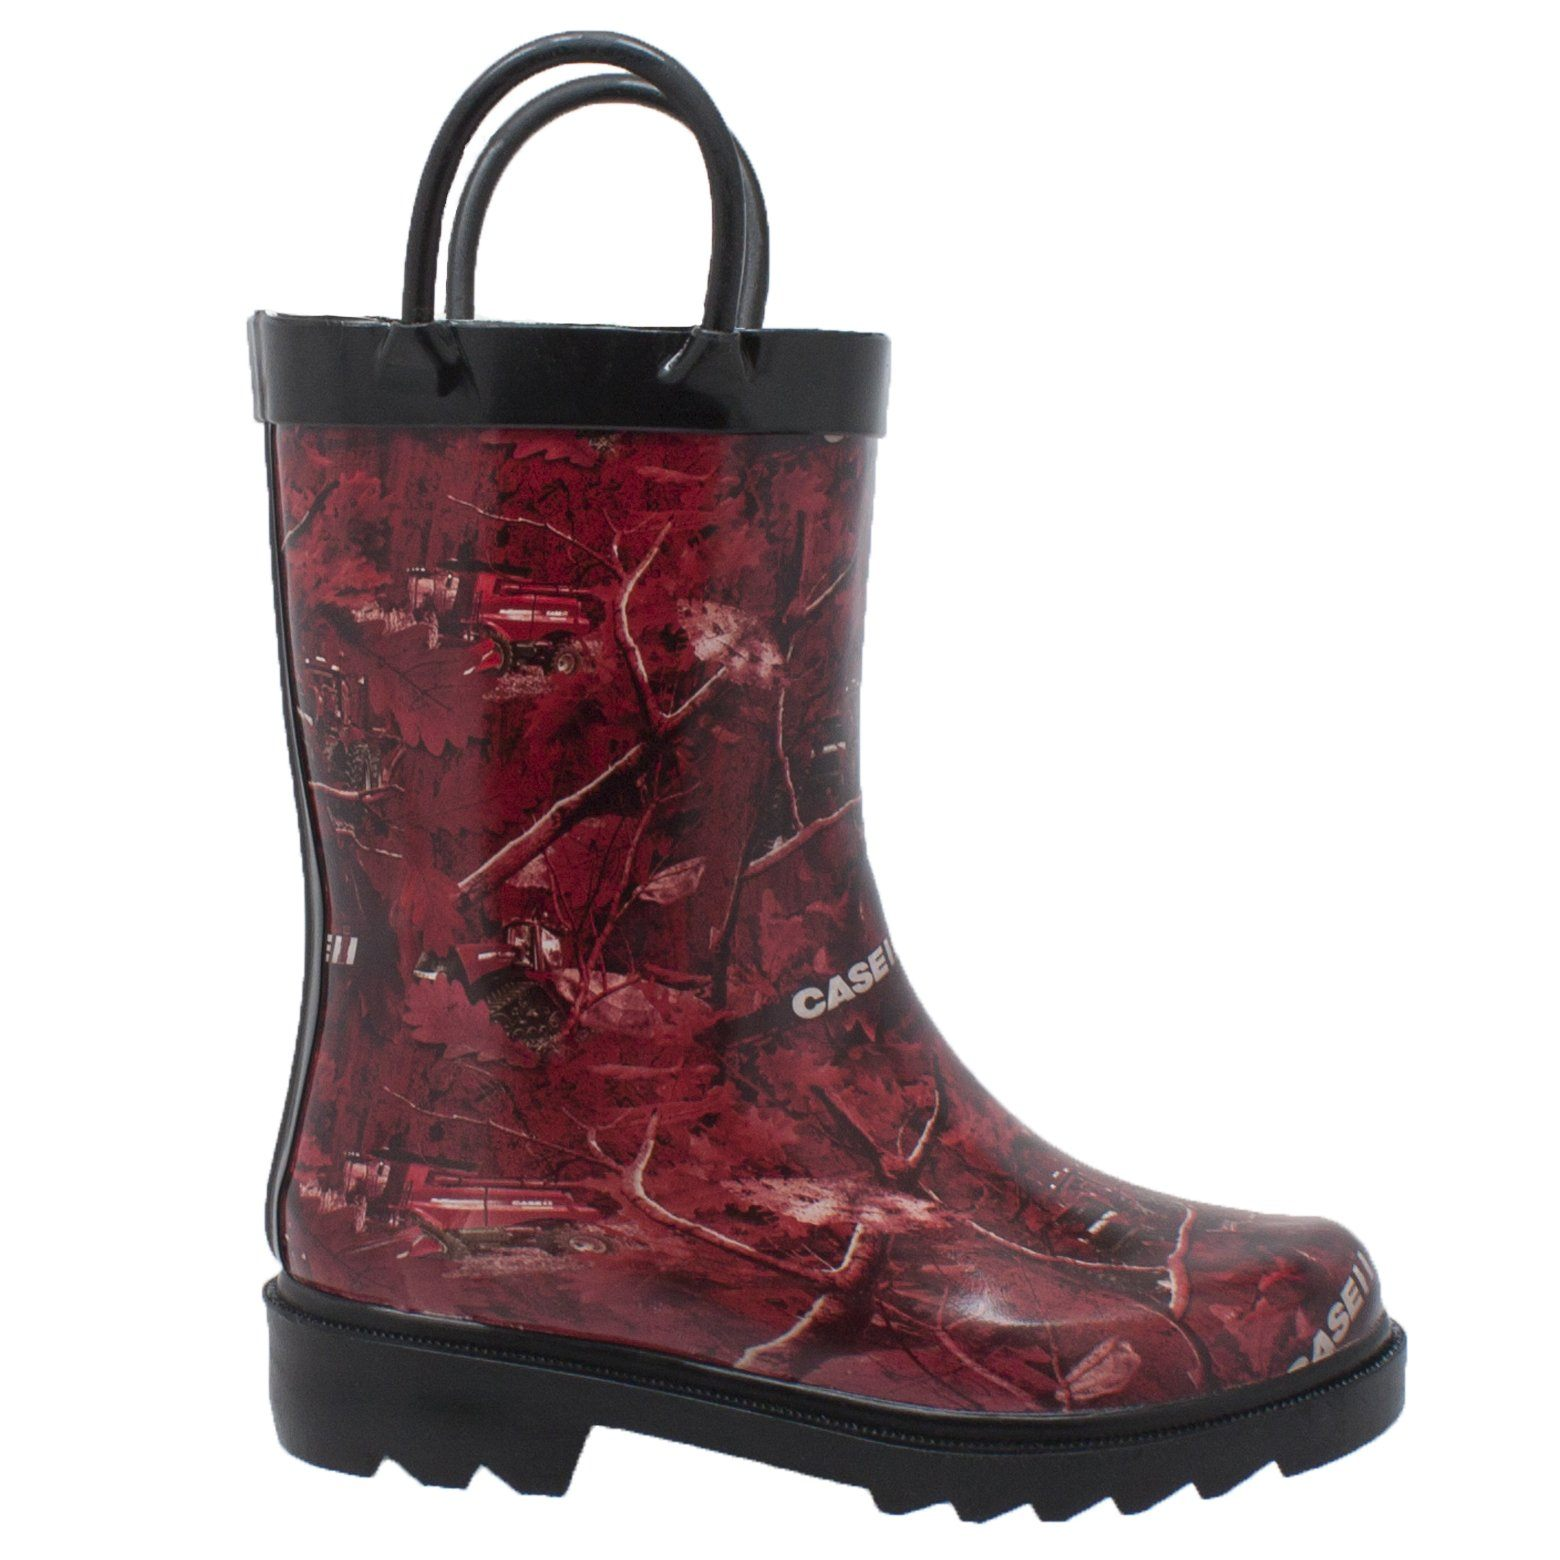 Children's Boots - Children's Red Camo Rubber Boots